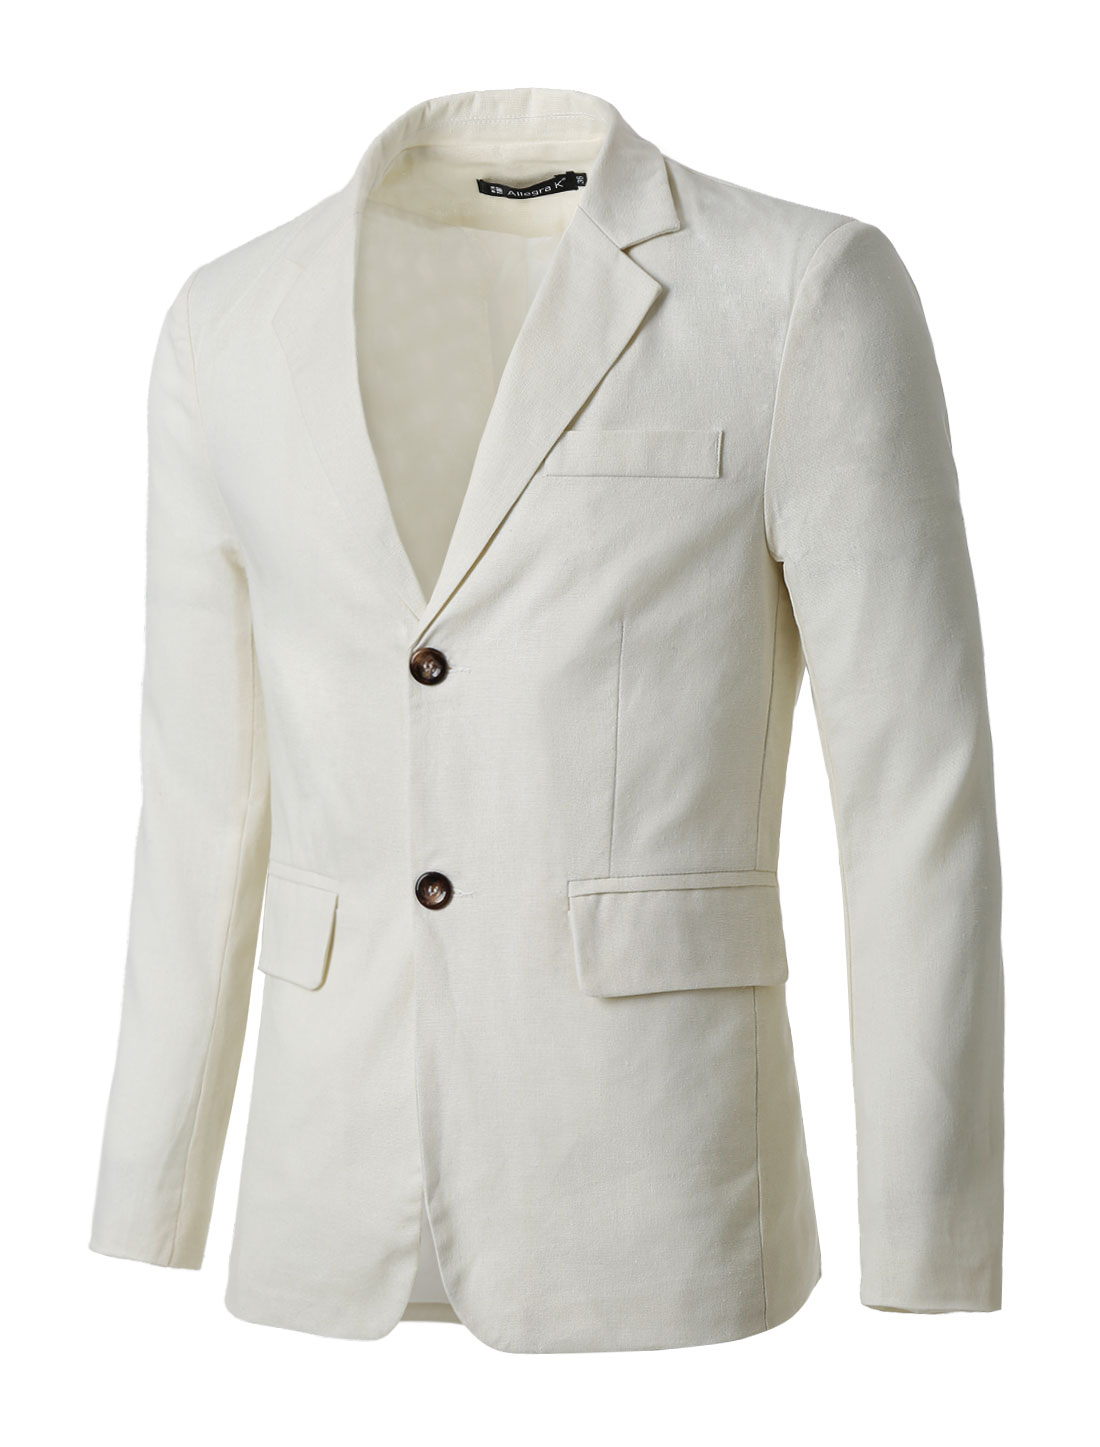 Man Notched Lapel Long Sleeves Single Breasted Blazer Off White M